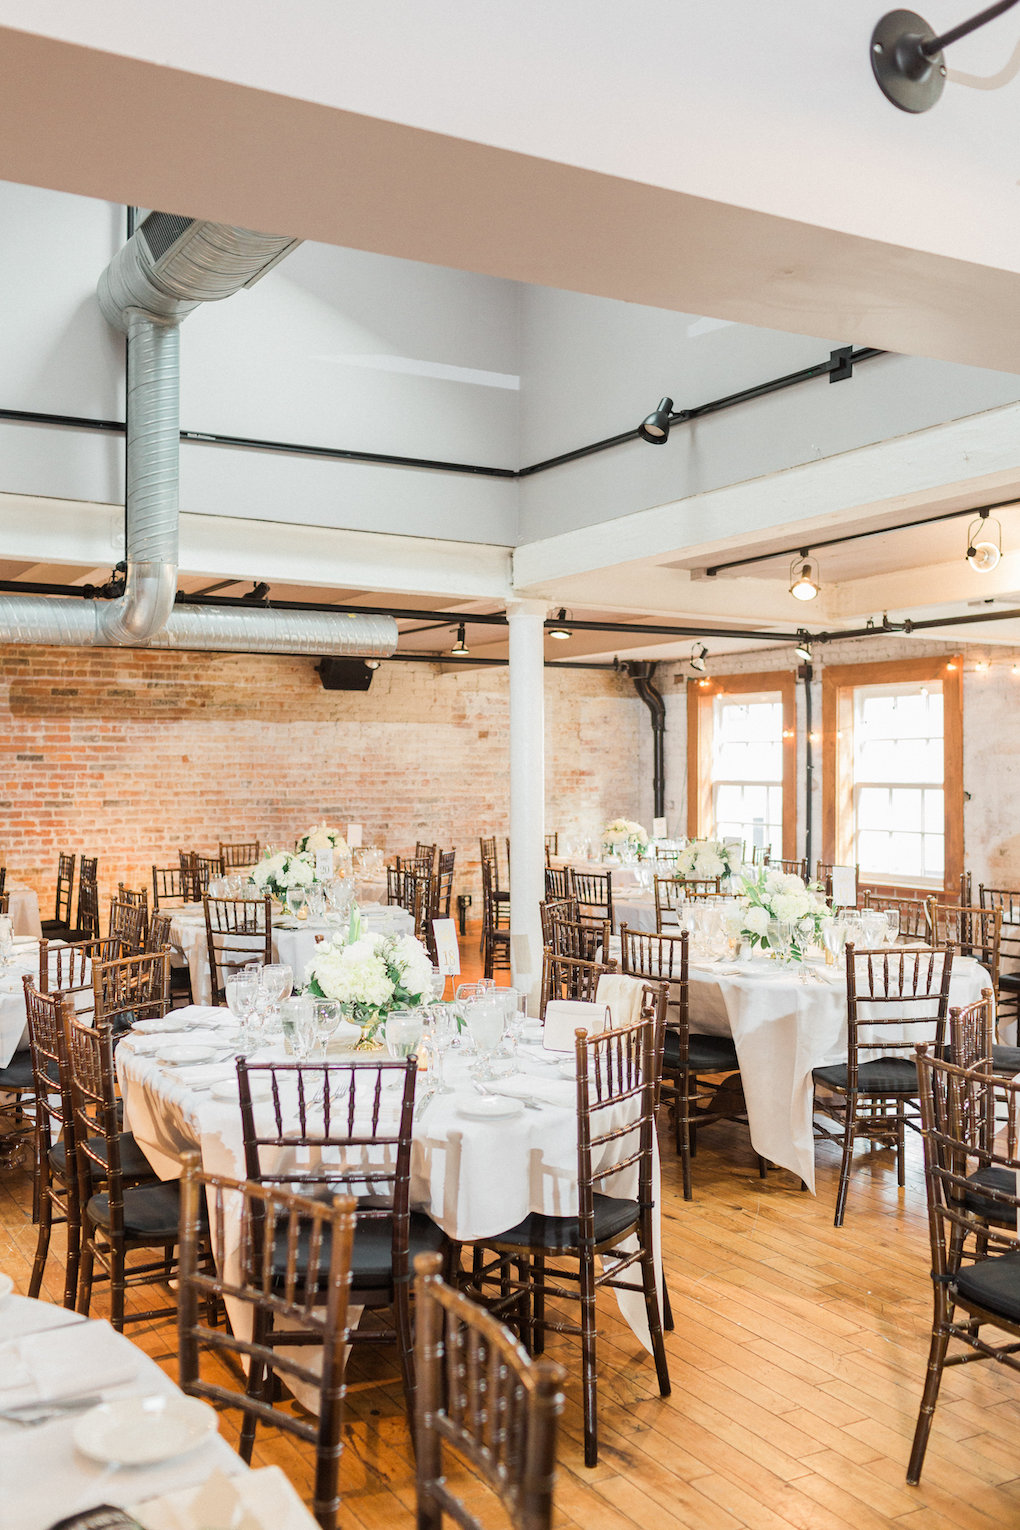 White and greenery wedding decor for chic wedding in Buffalo, NY planned by Exhale Events. Find more timeless wedding inspiration at exhale-events.com!